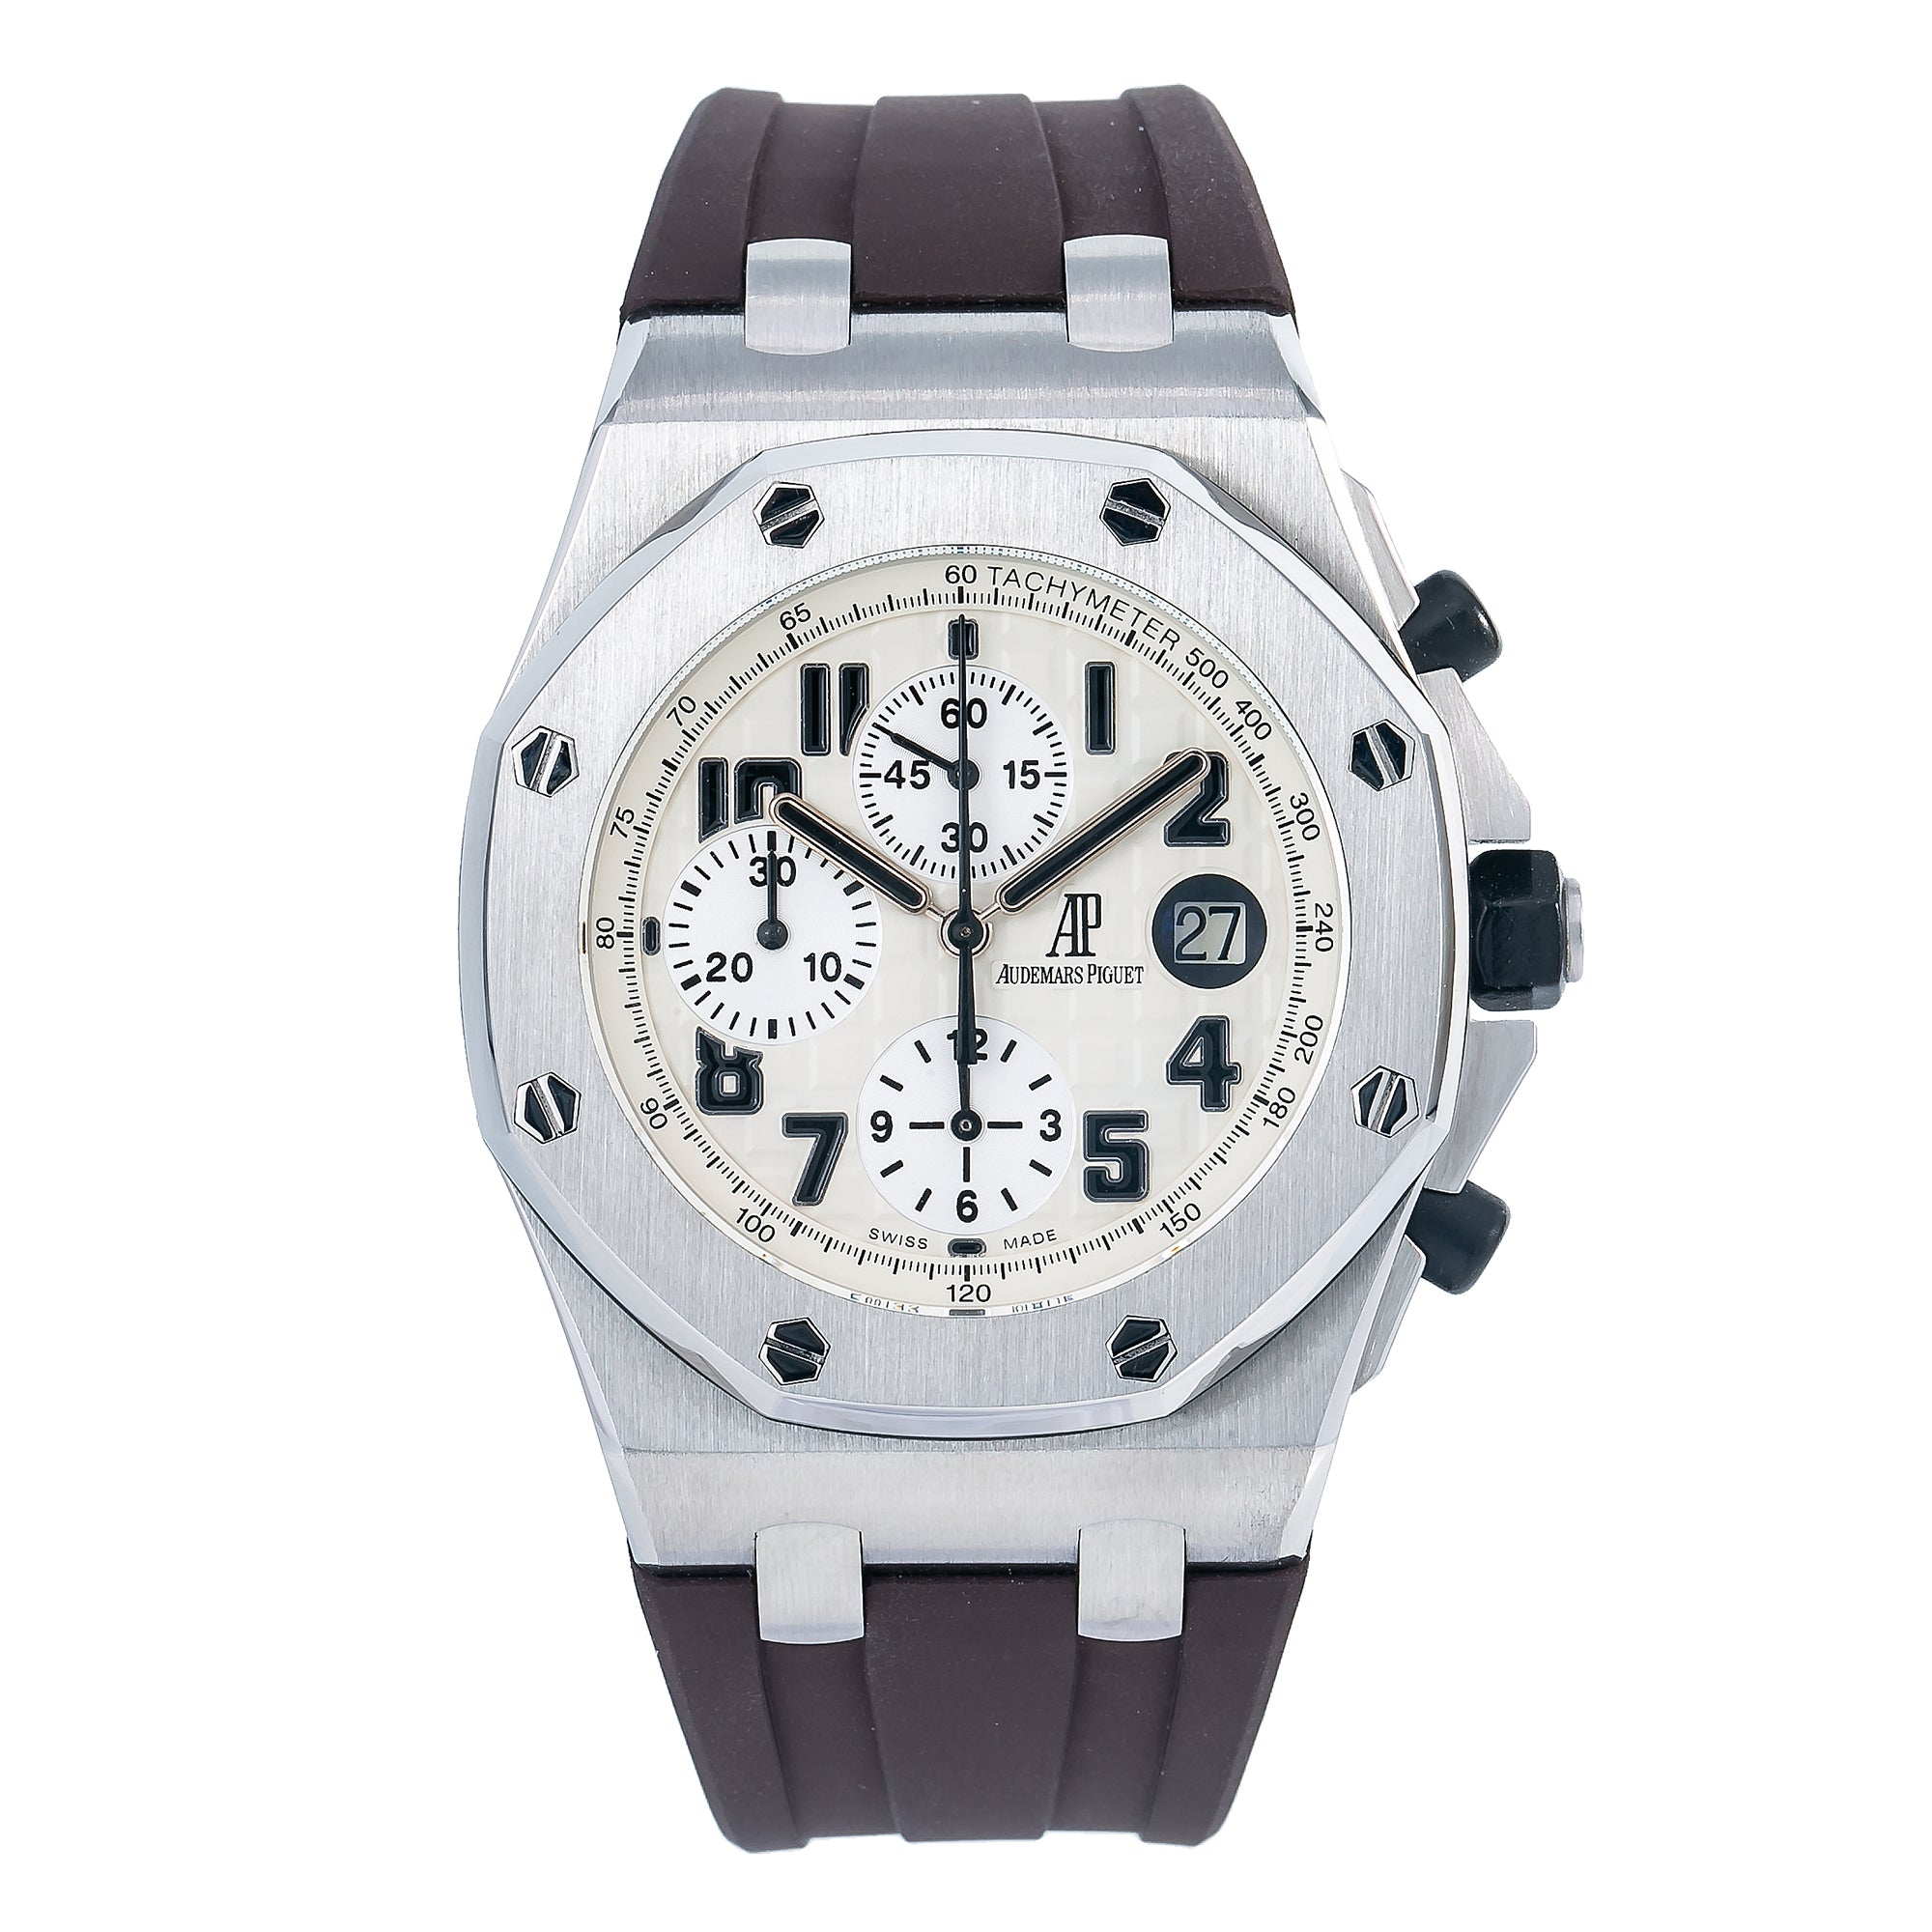 Audemars Piguet Royal Oak Offshore Chronograph 26170ST 42MM White Dial With Rubber Bracelet